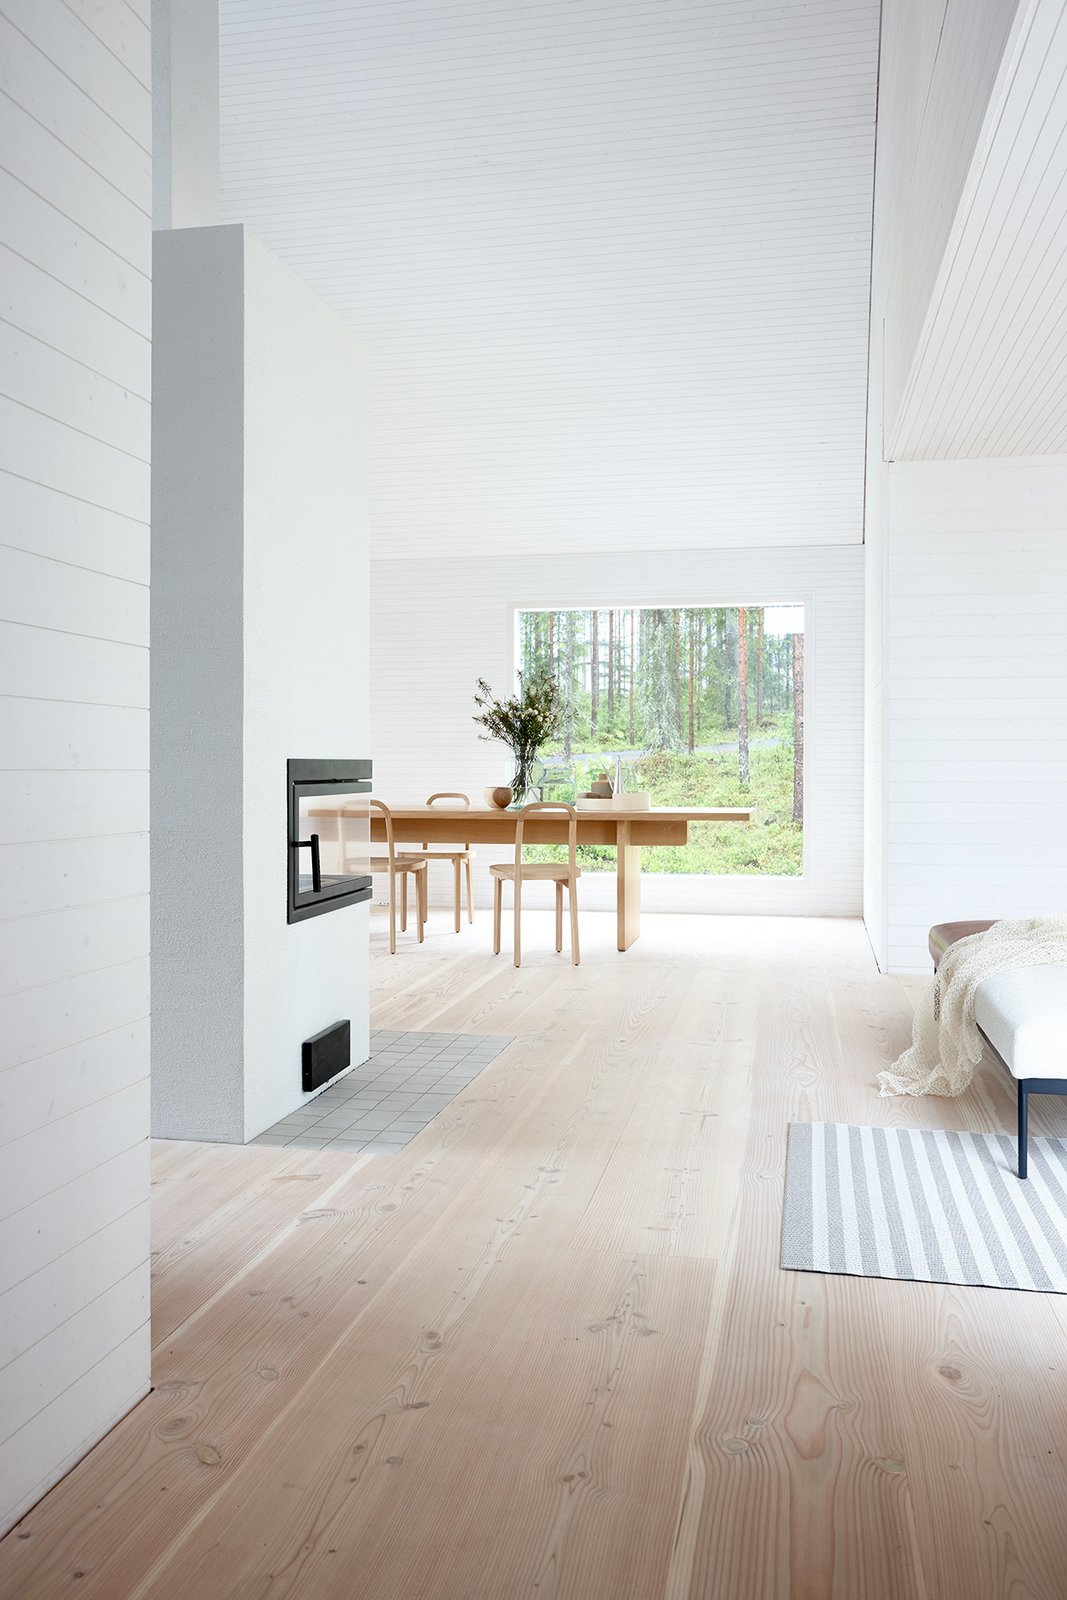 Photo 2 of 6 in House K by Hirvilammi Architects